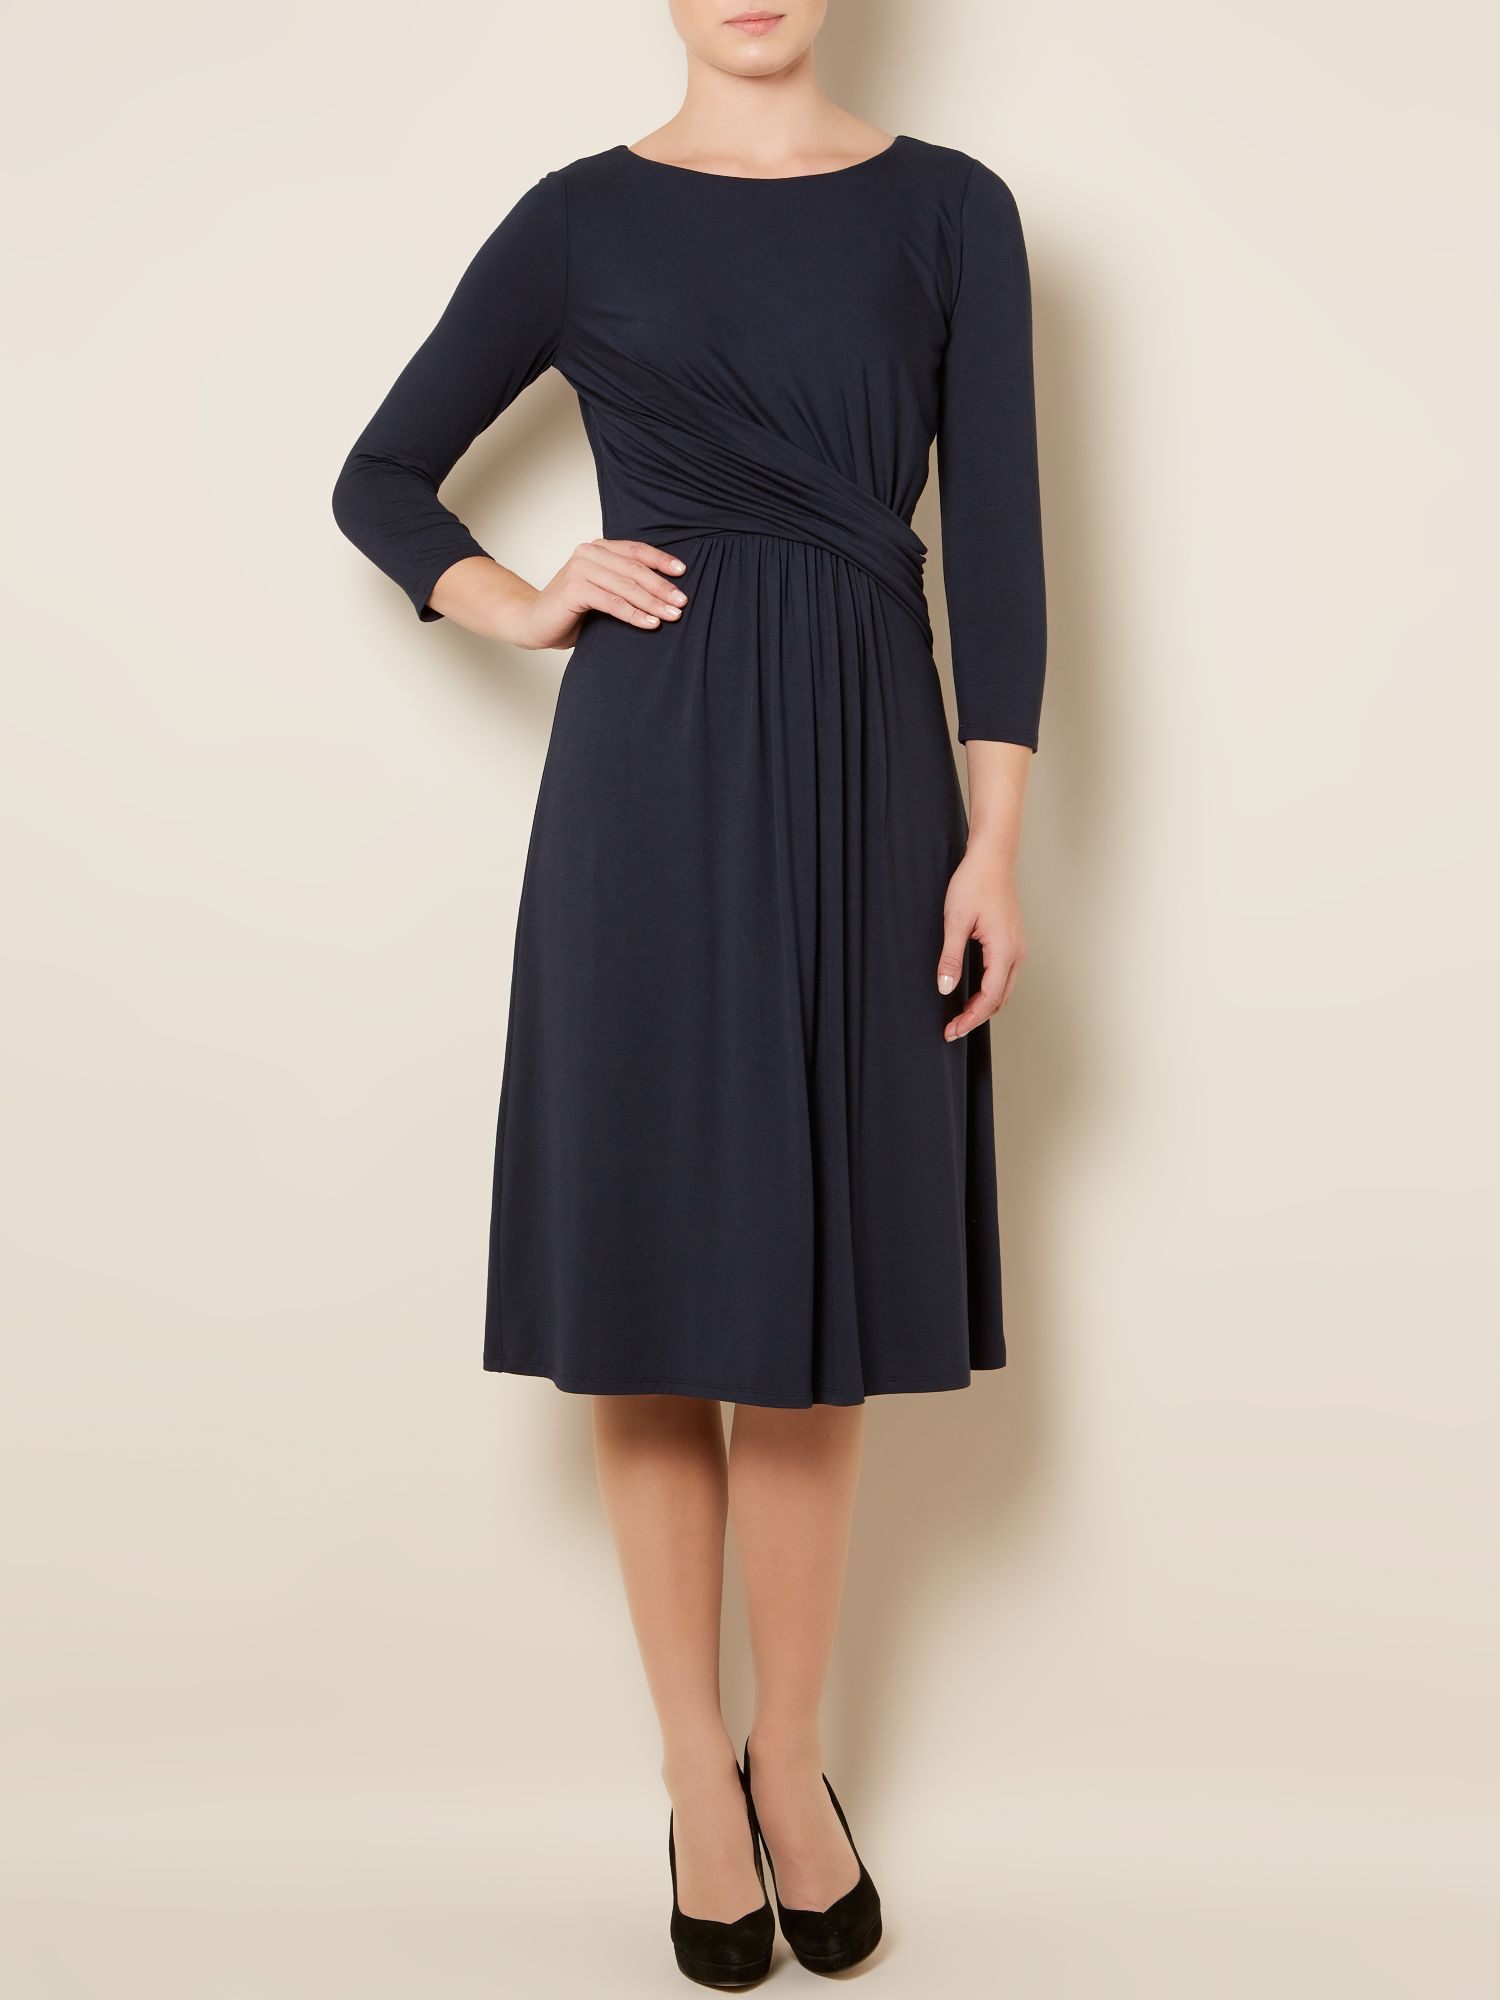 Jakki drape dress